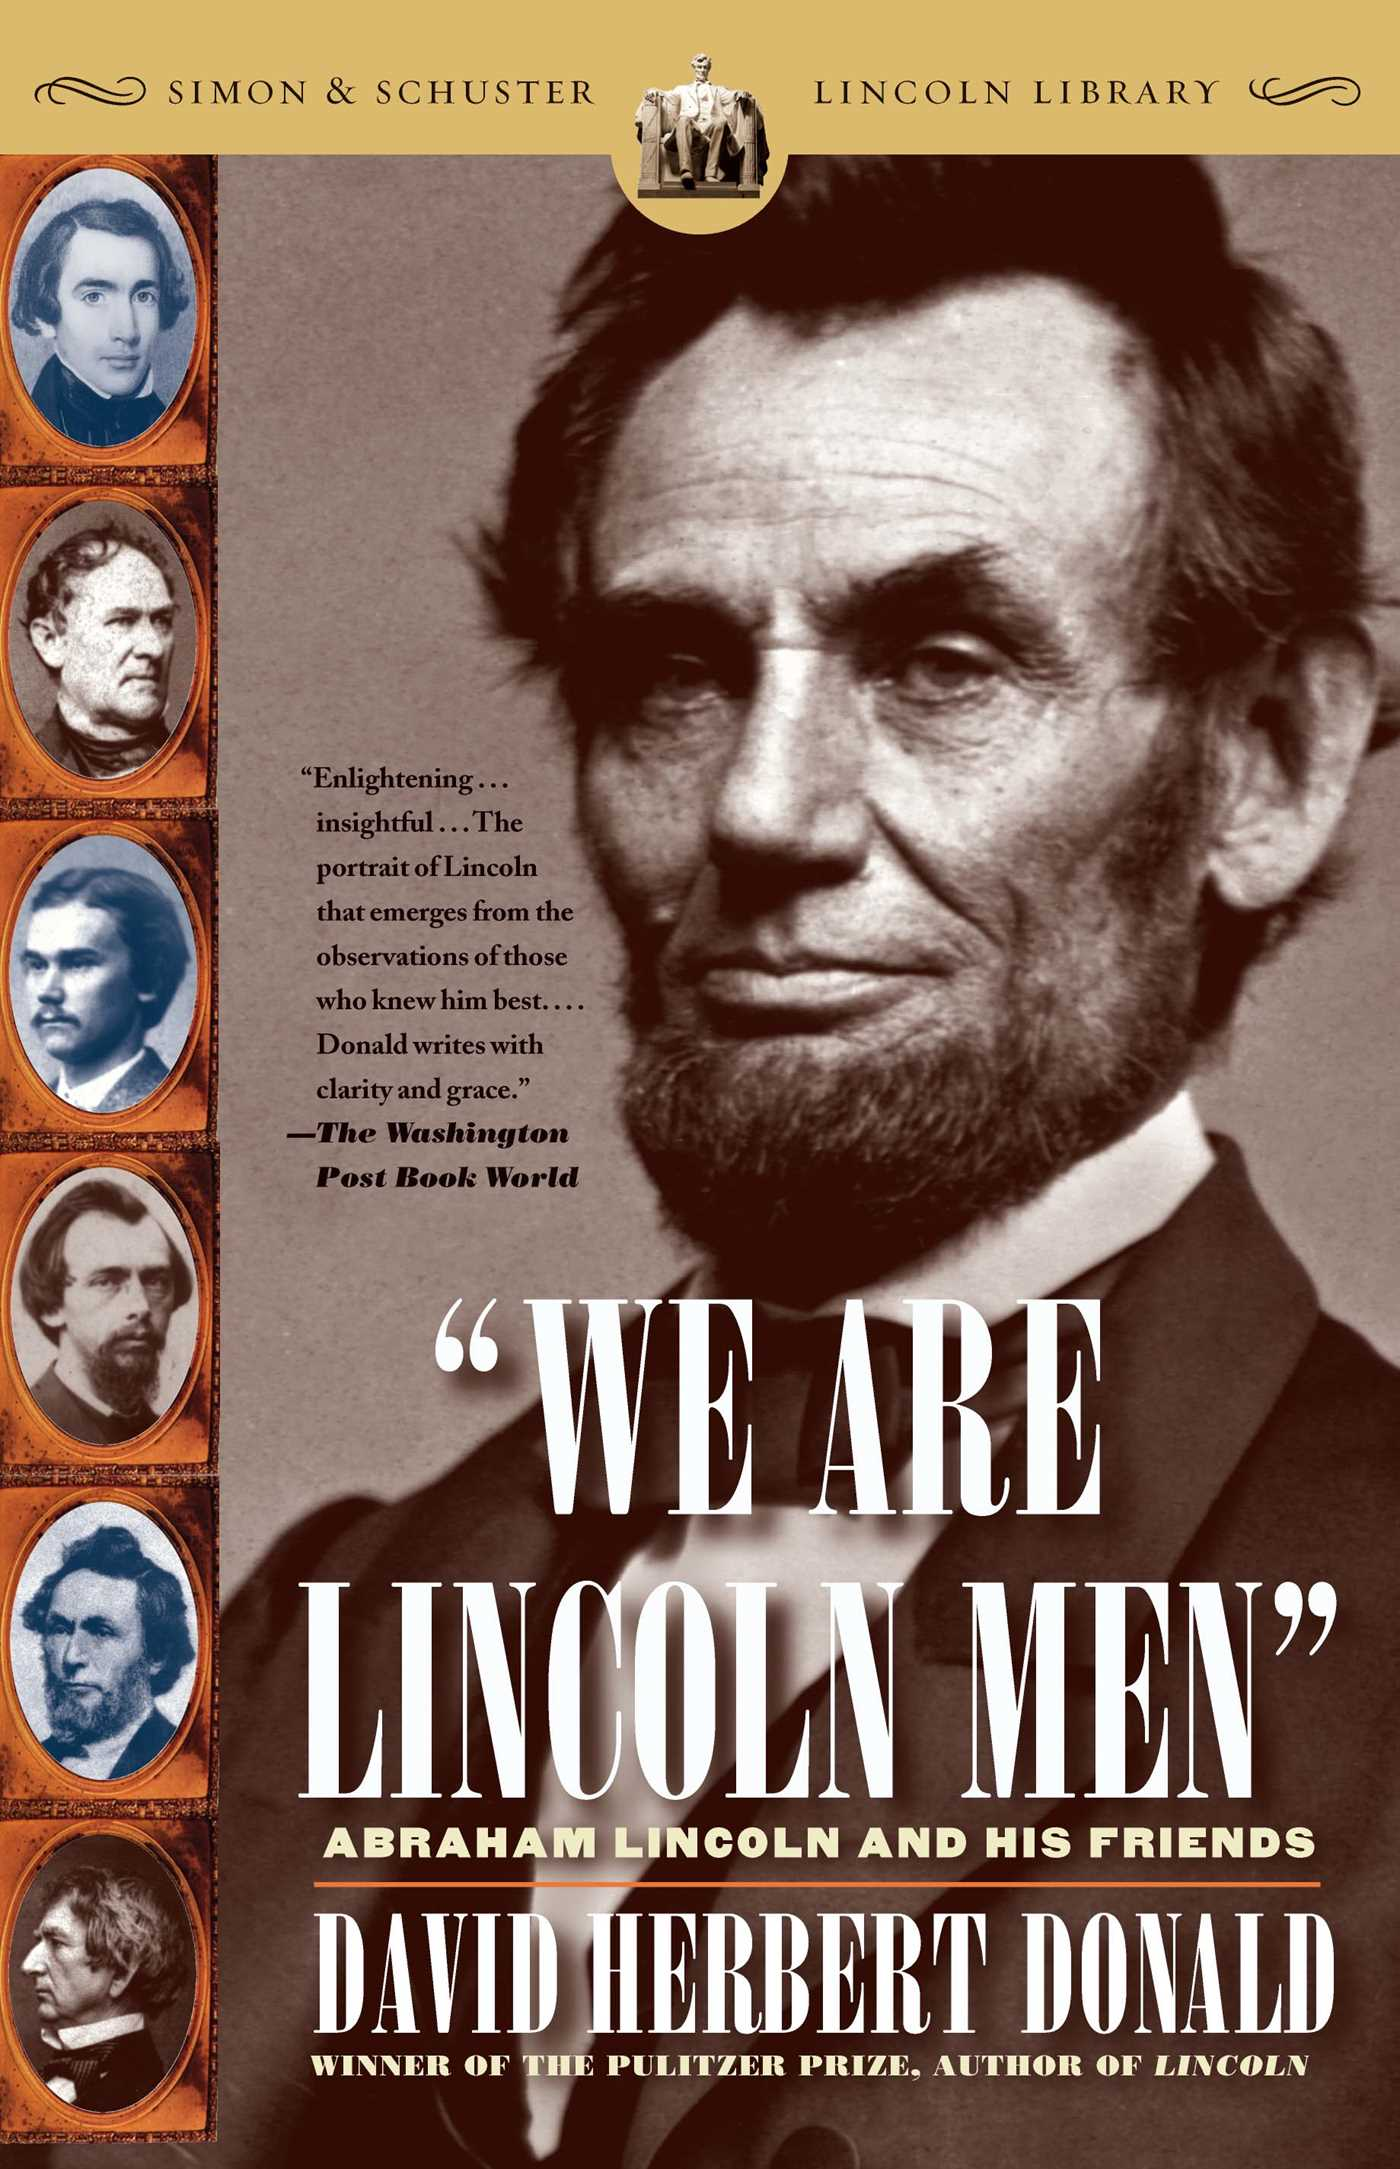 book lsu detail cover lincoln books press release image loathing author